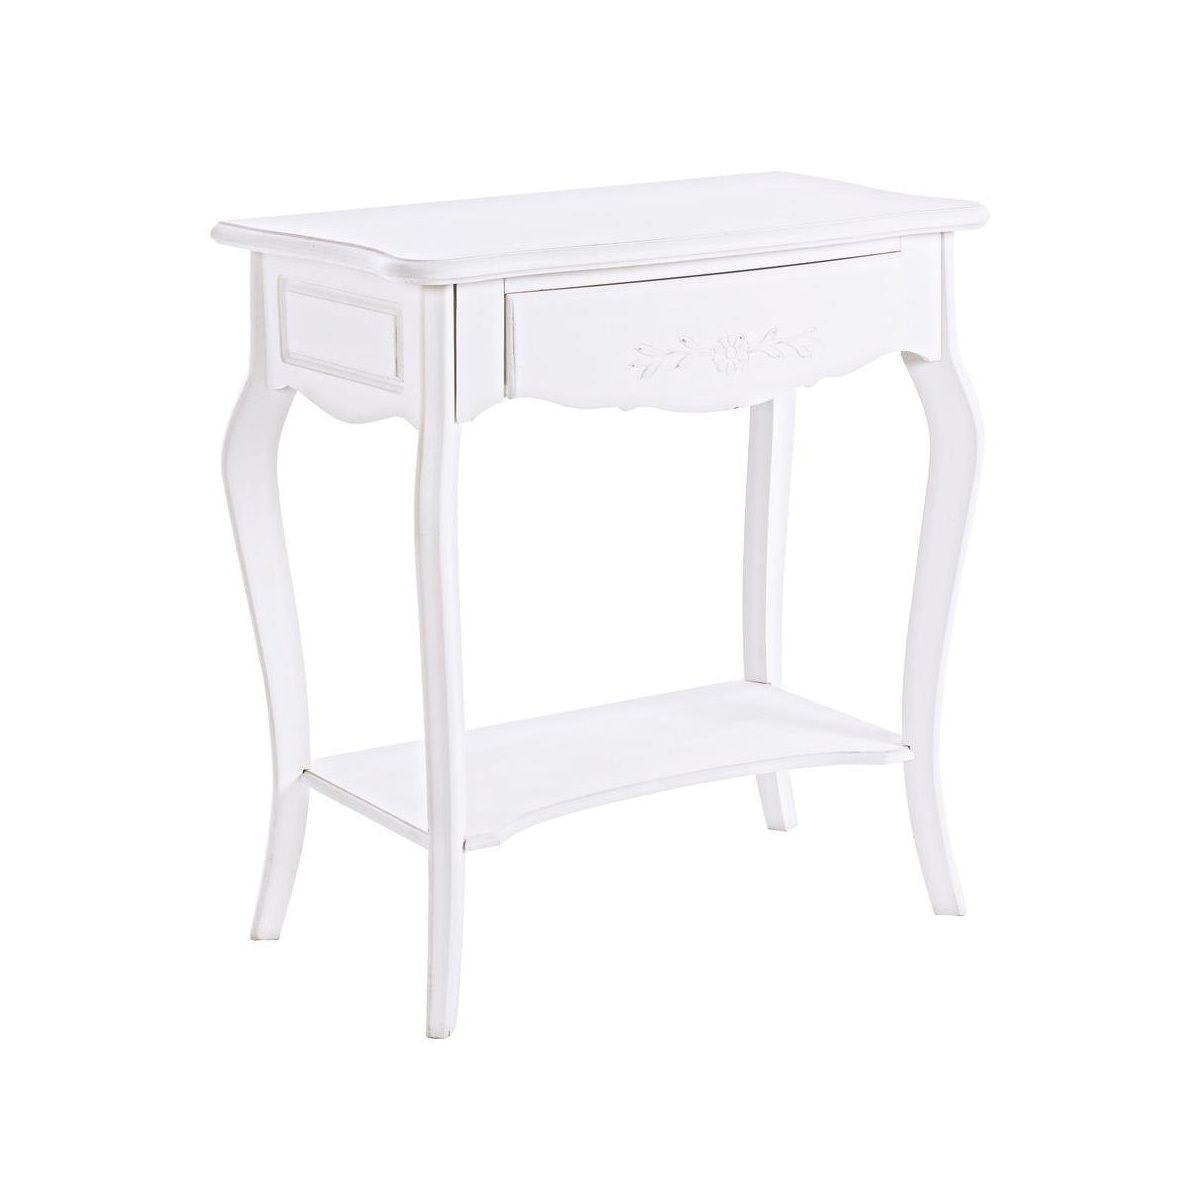 Photos 1: Bizzotto Fixed wood console l. 70 x 40 0744404